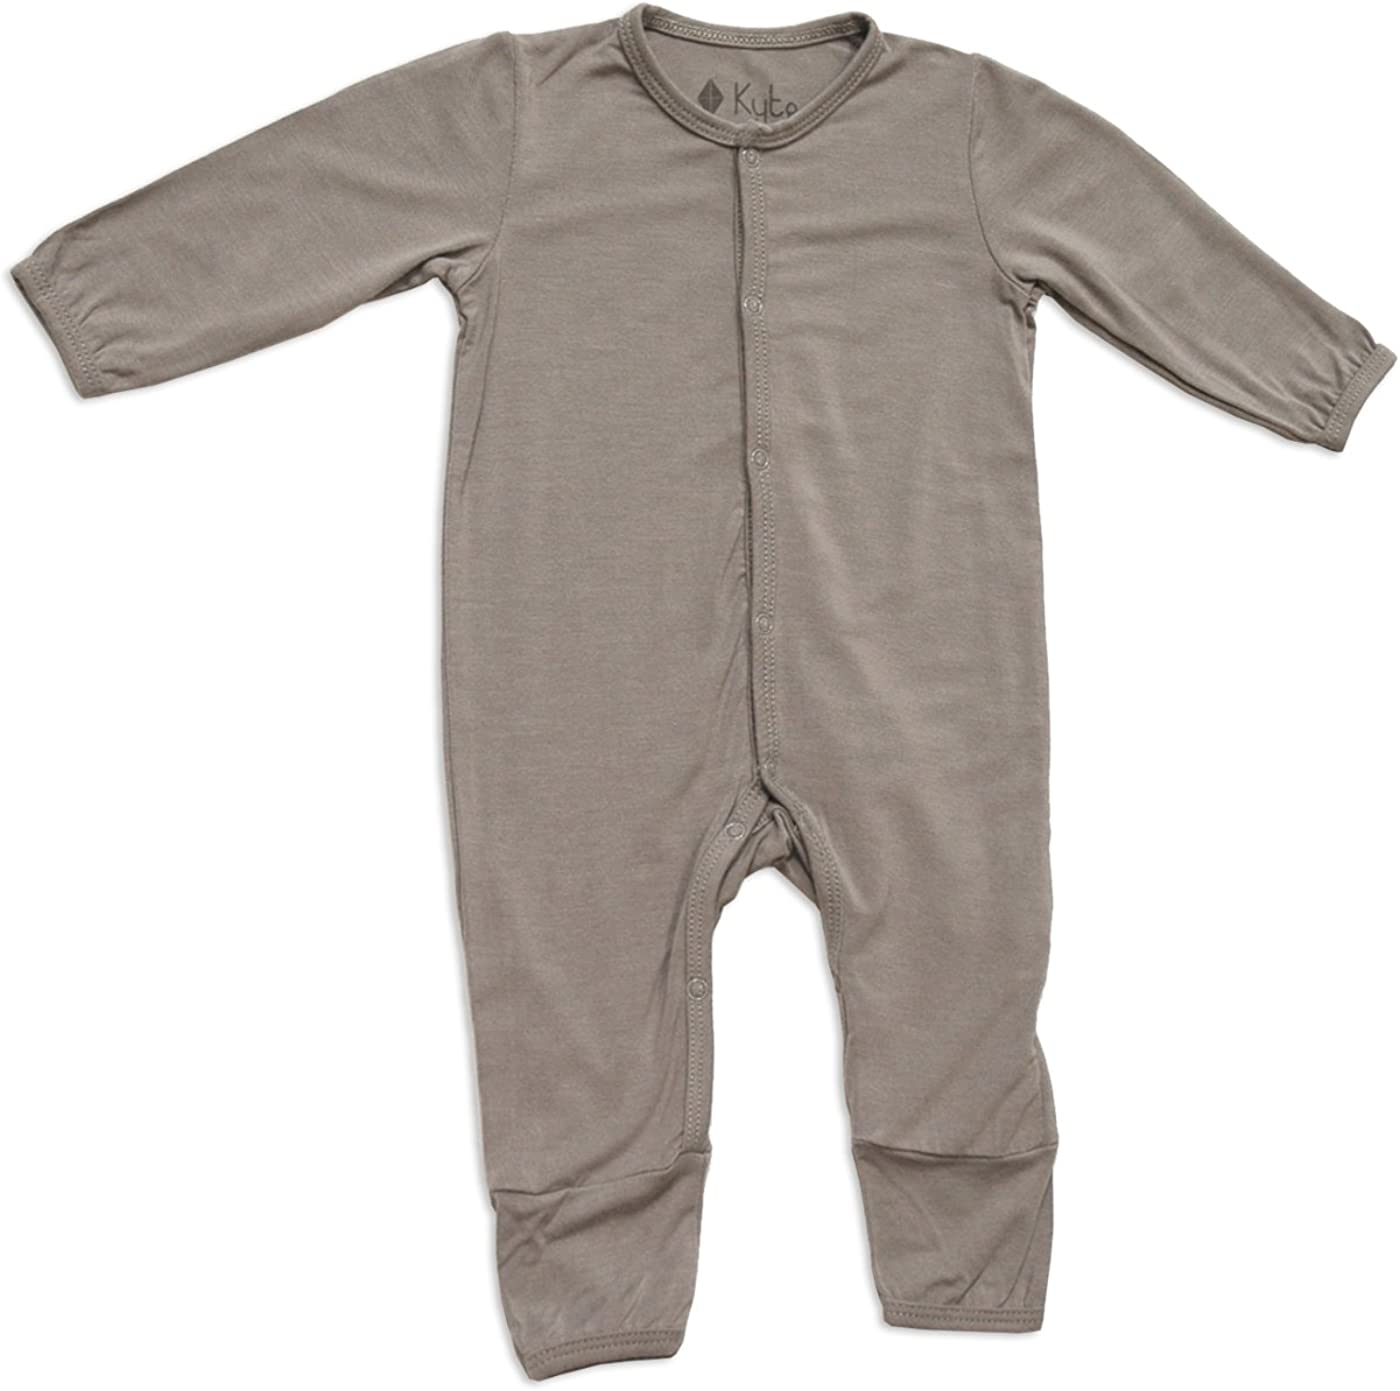 KYTE BABY Unisex Soft Bamboo Rayon Rompers, Snap Closure, 0-24 Months